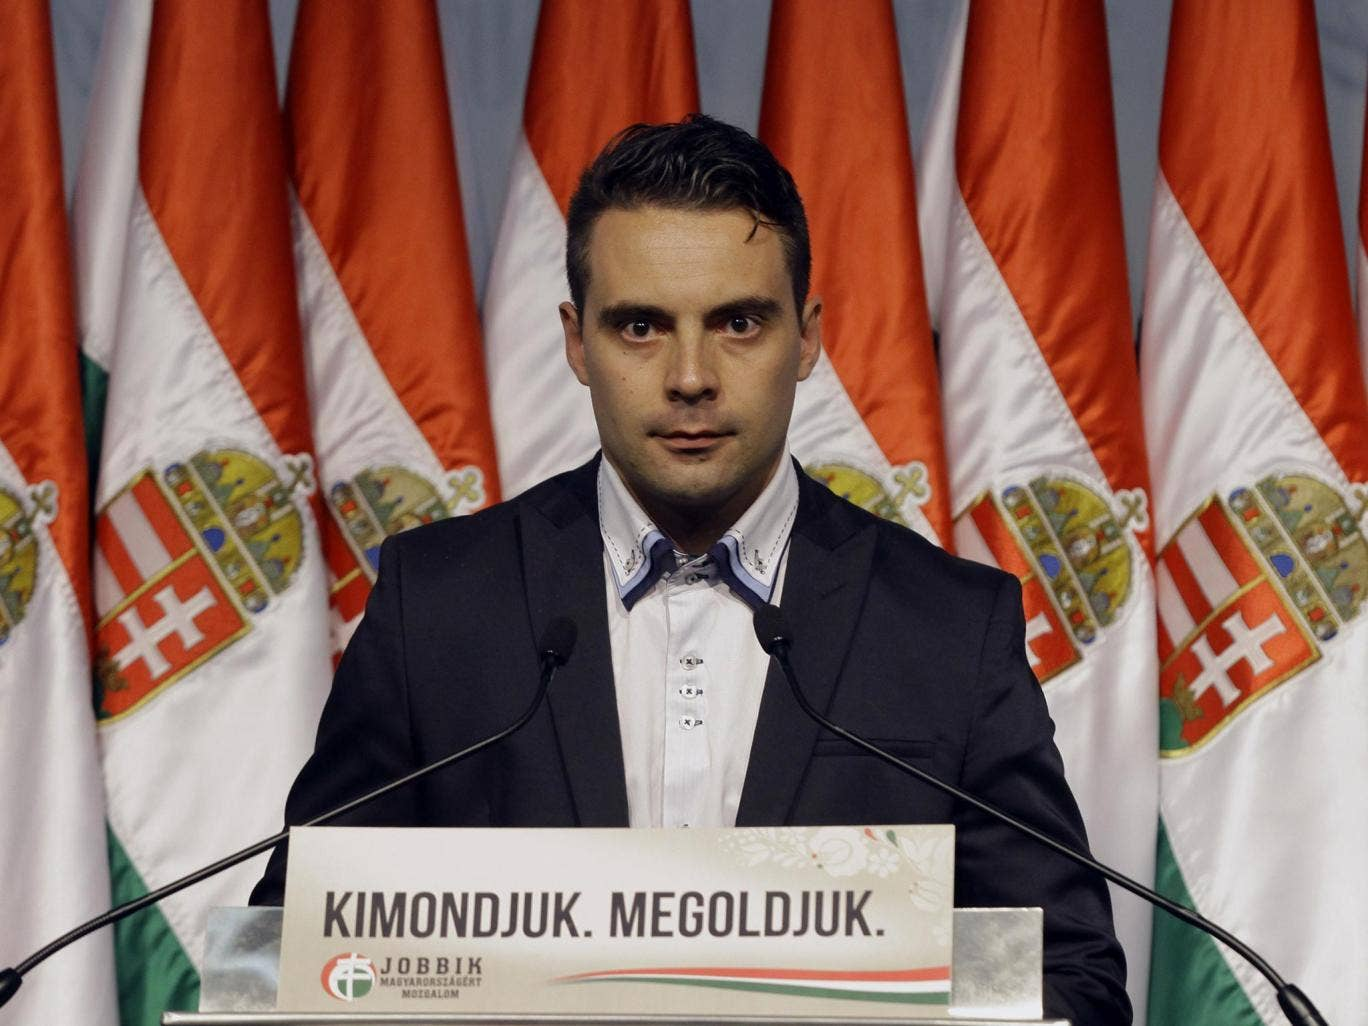 Gabor Vona, leader of the far-right Jobbik party, saw significant gains